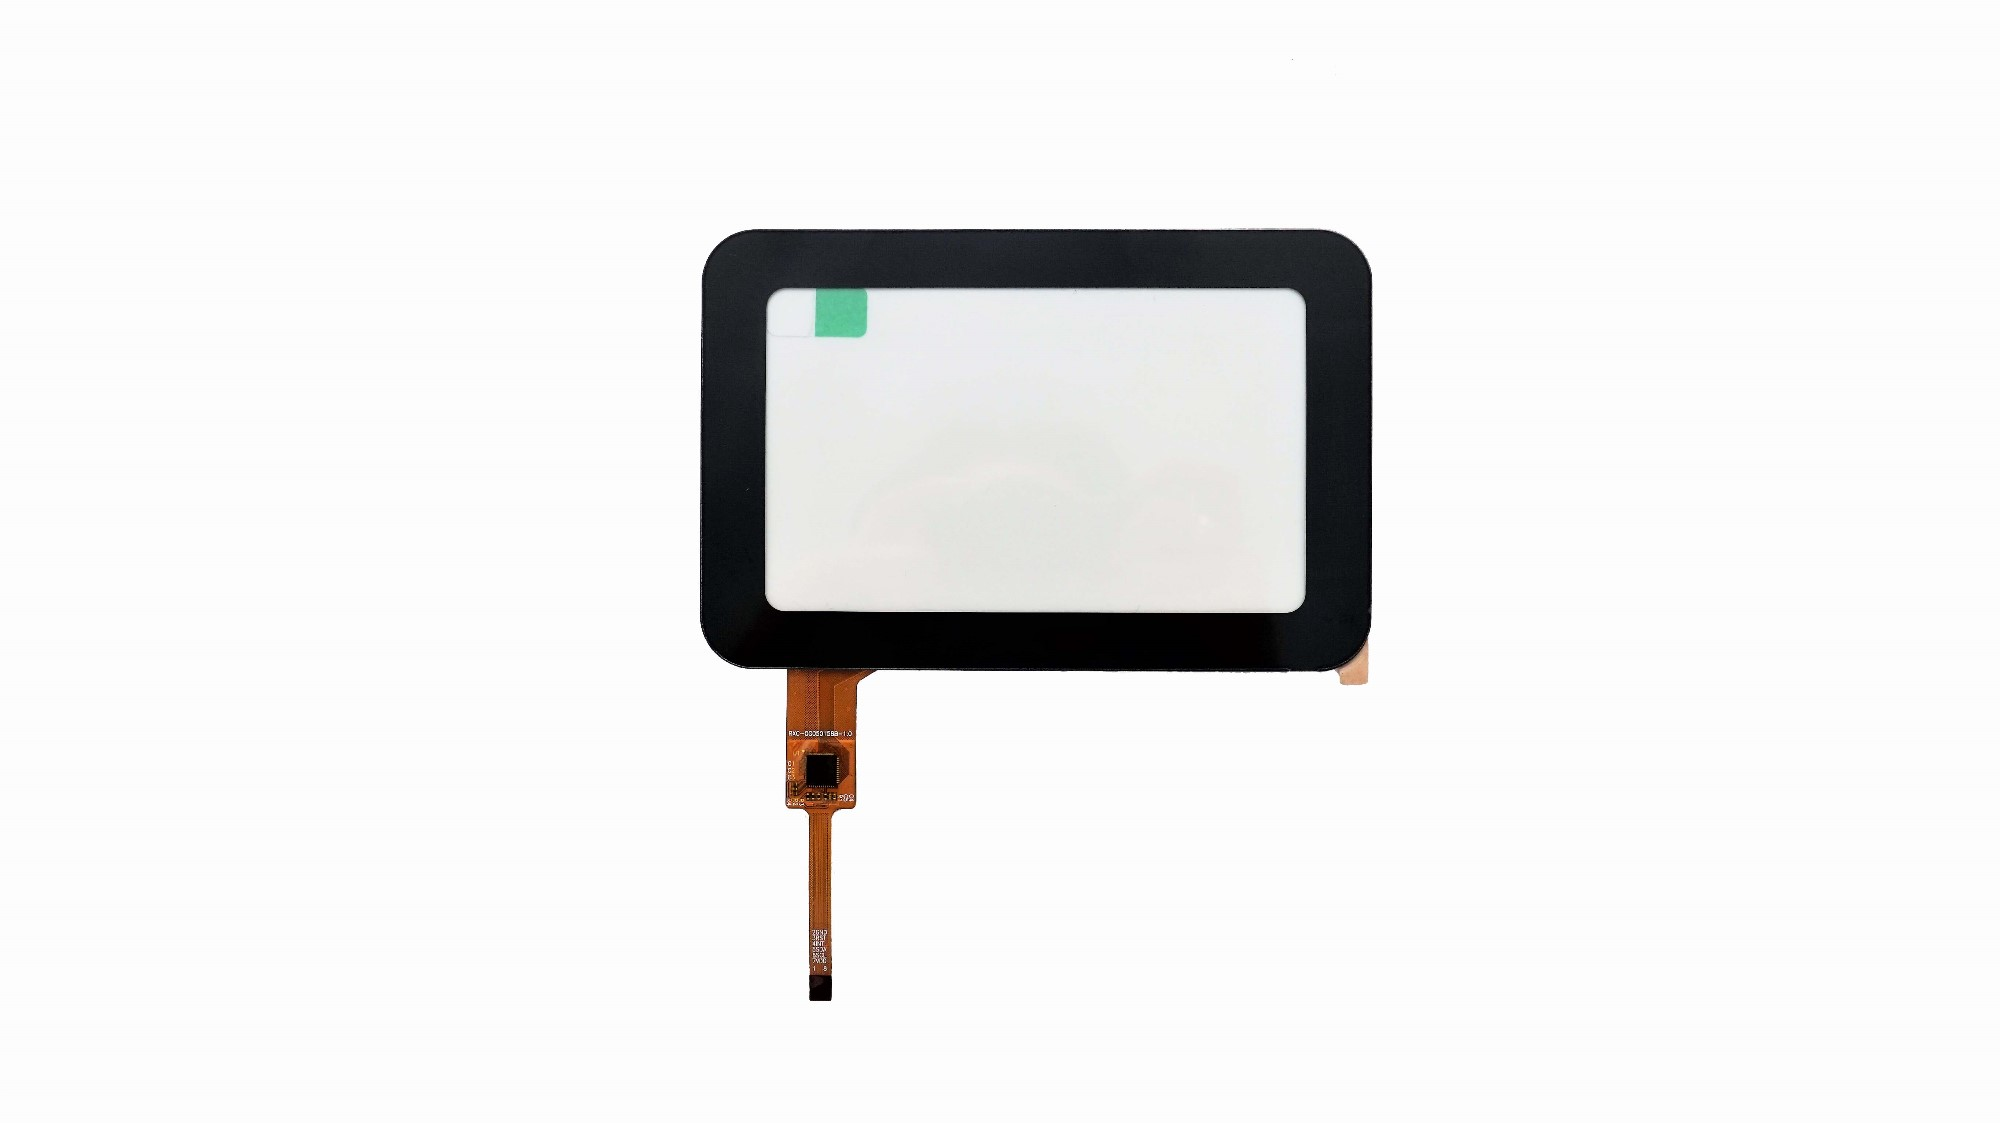 5.0 Inch Industrial Control Equipment Gf Pg Gg Touch Panels